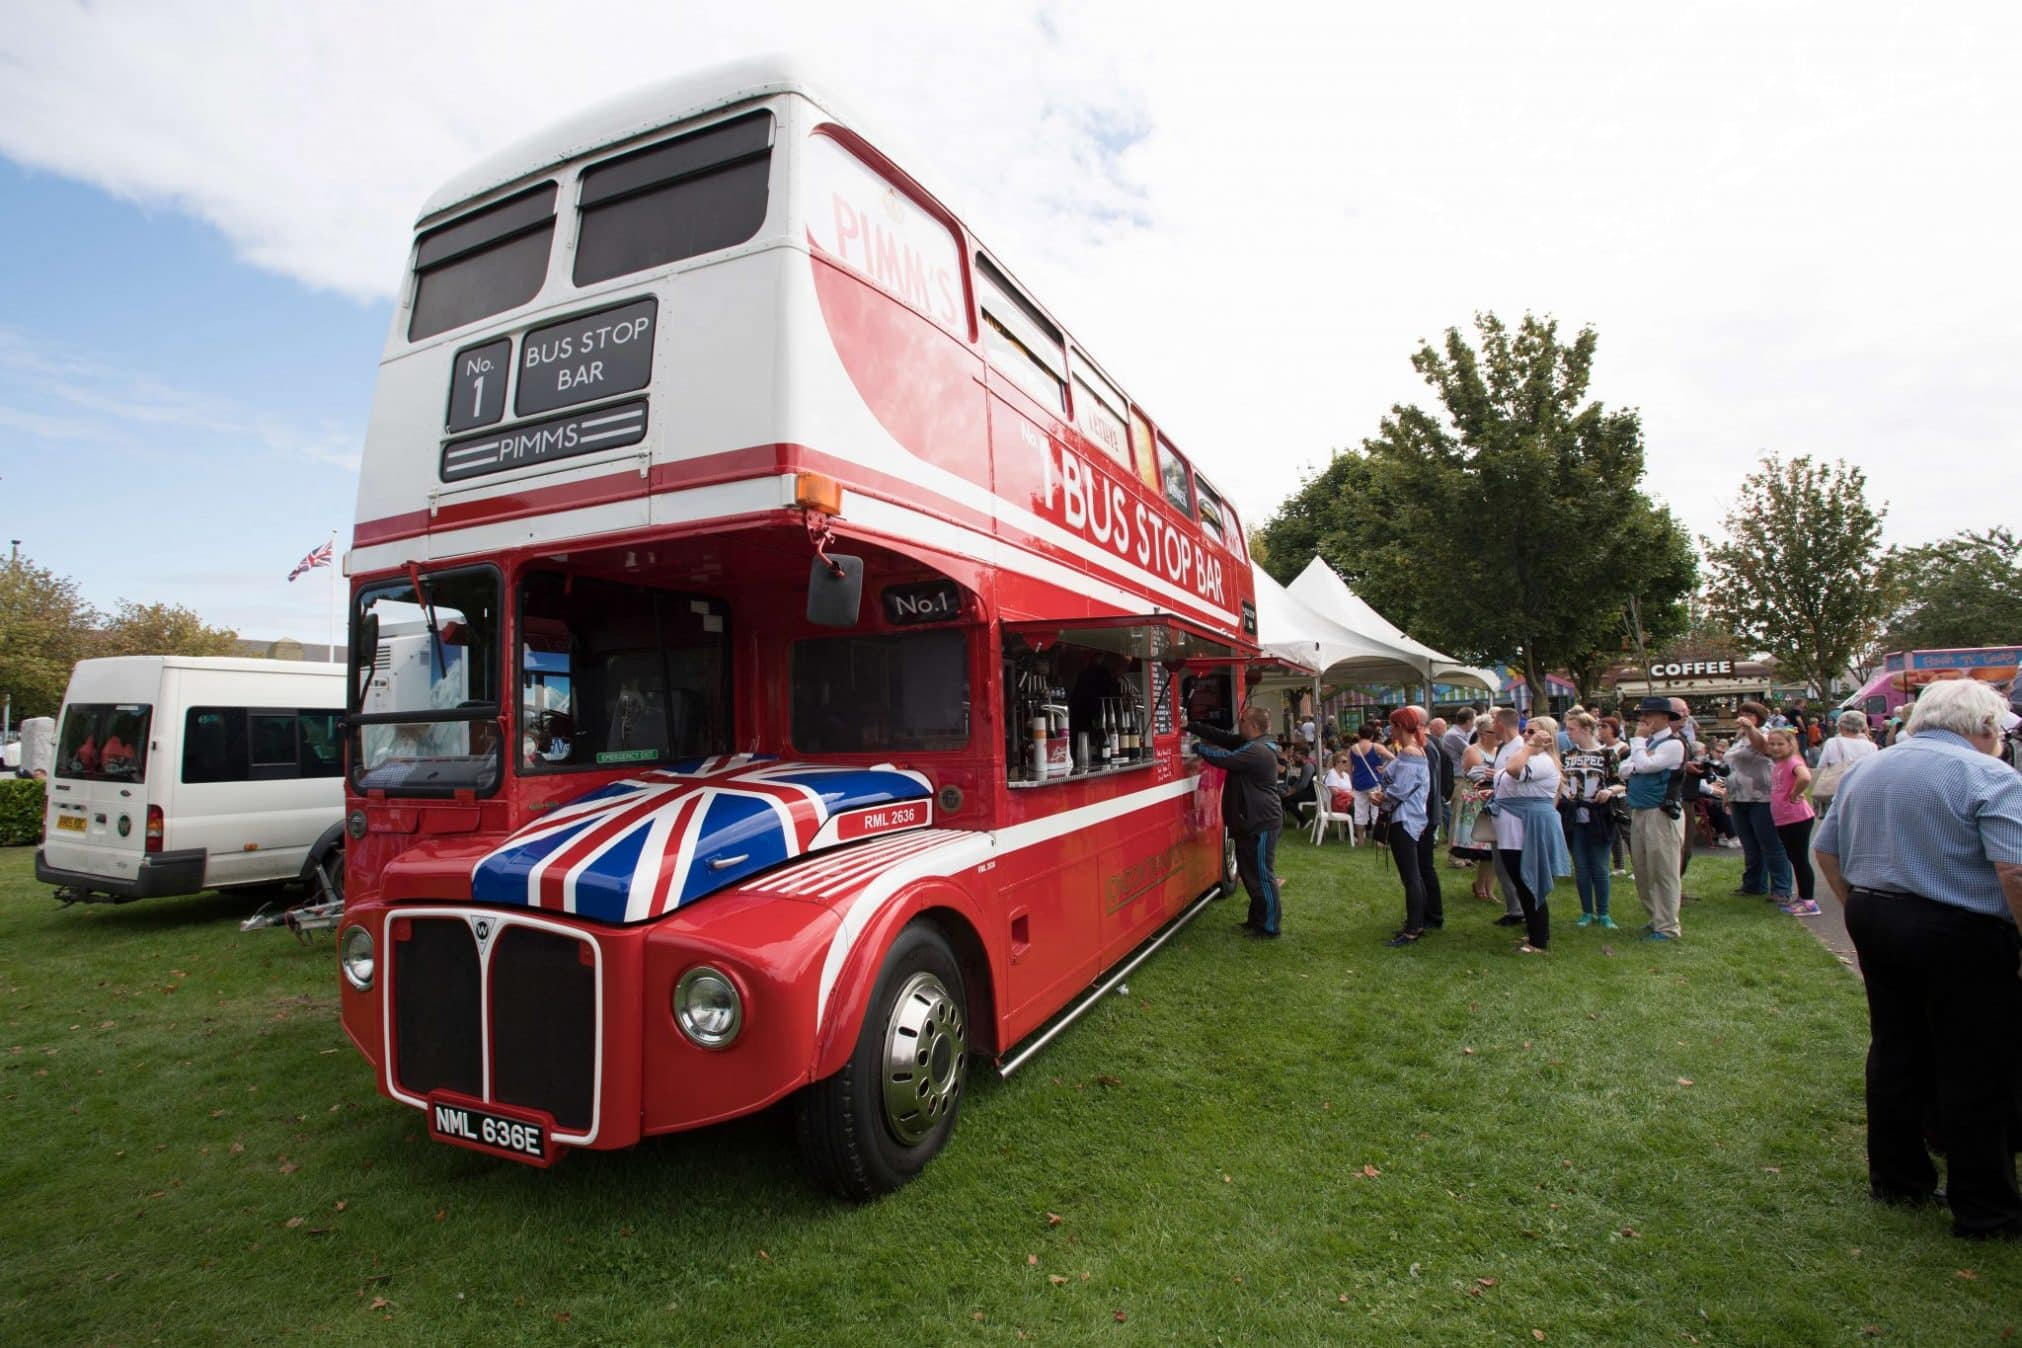 A Red London bus at Motorfest 2017